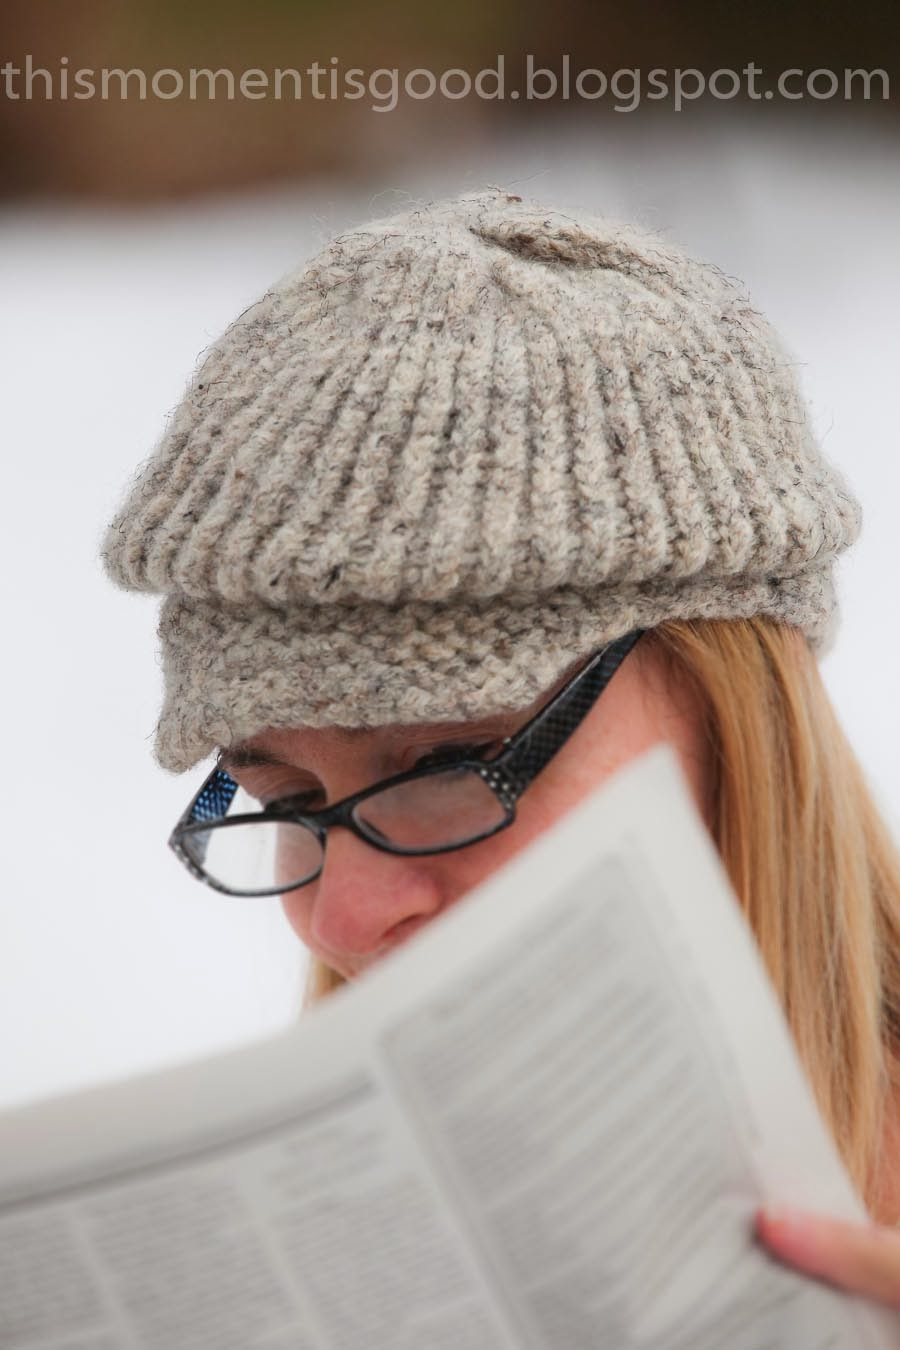 Loom Knit Hat Patterns Free : Loom Knitting by This Moment is Good!: LOOM KNIT FELTED NEWSBOY HAT